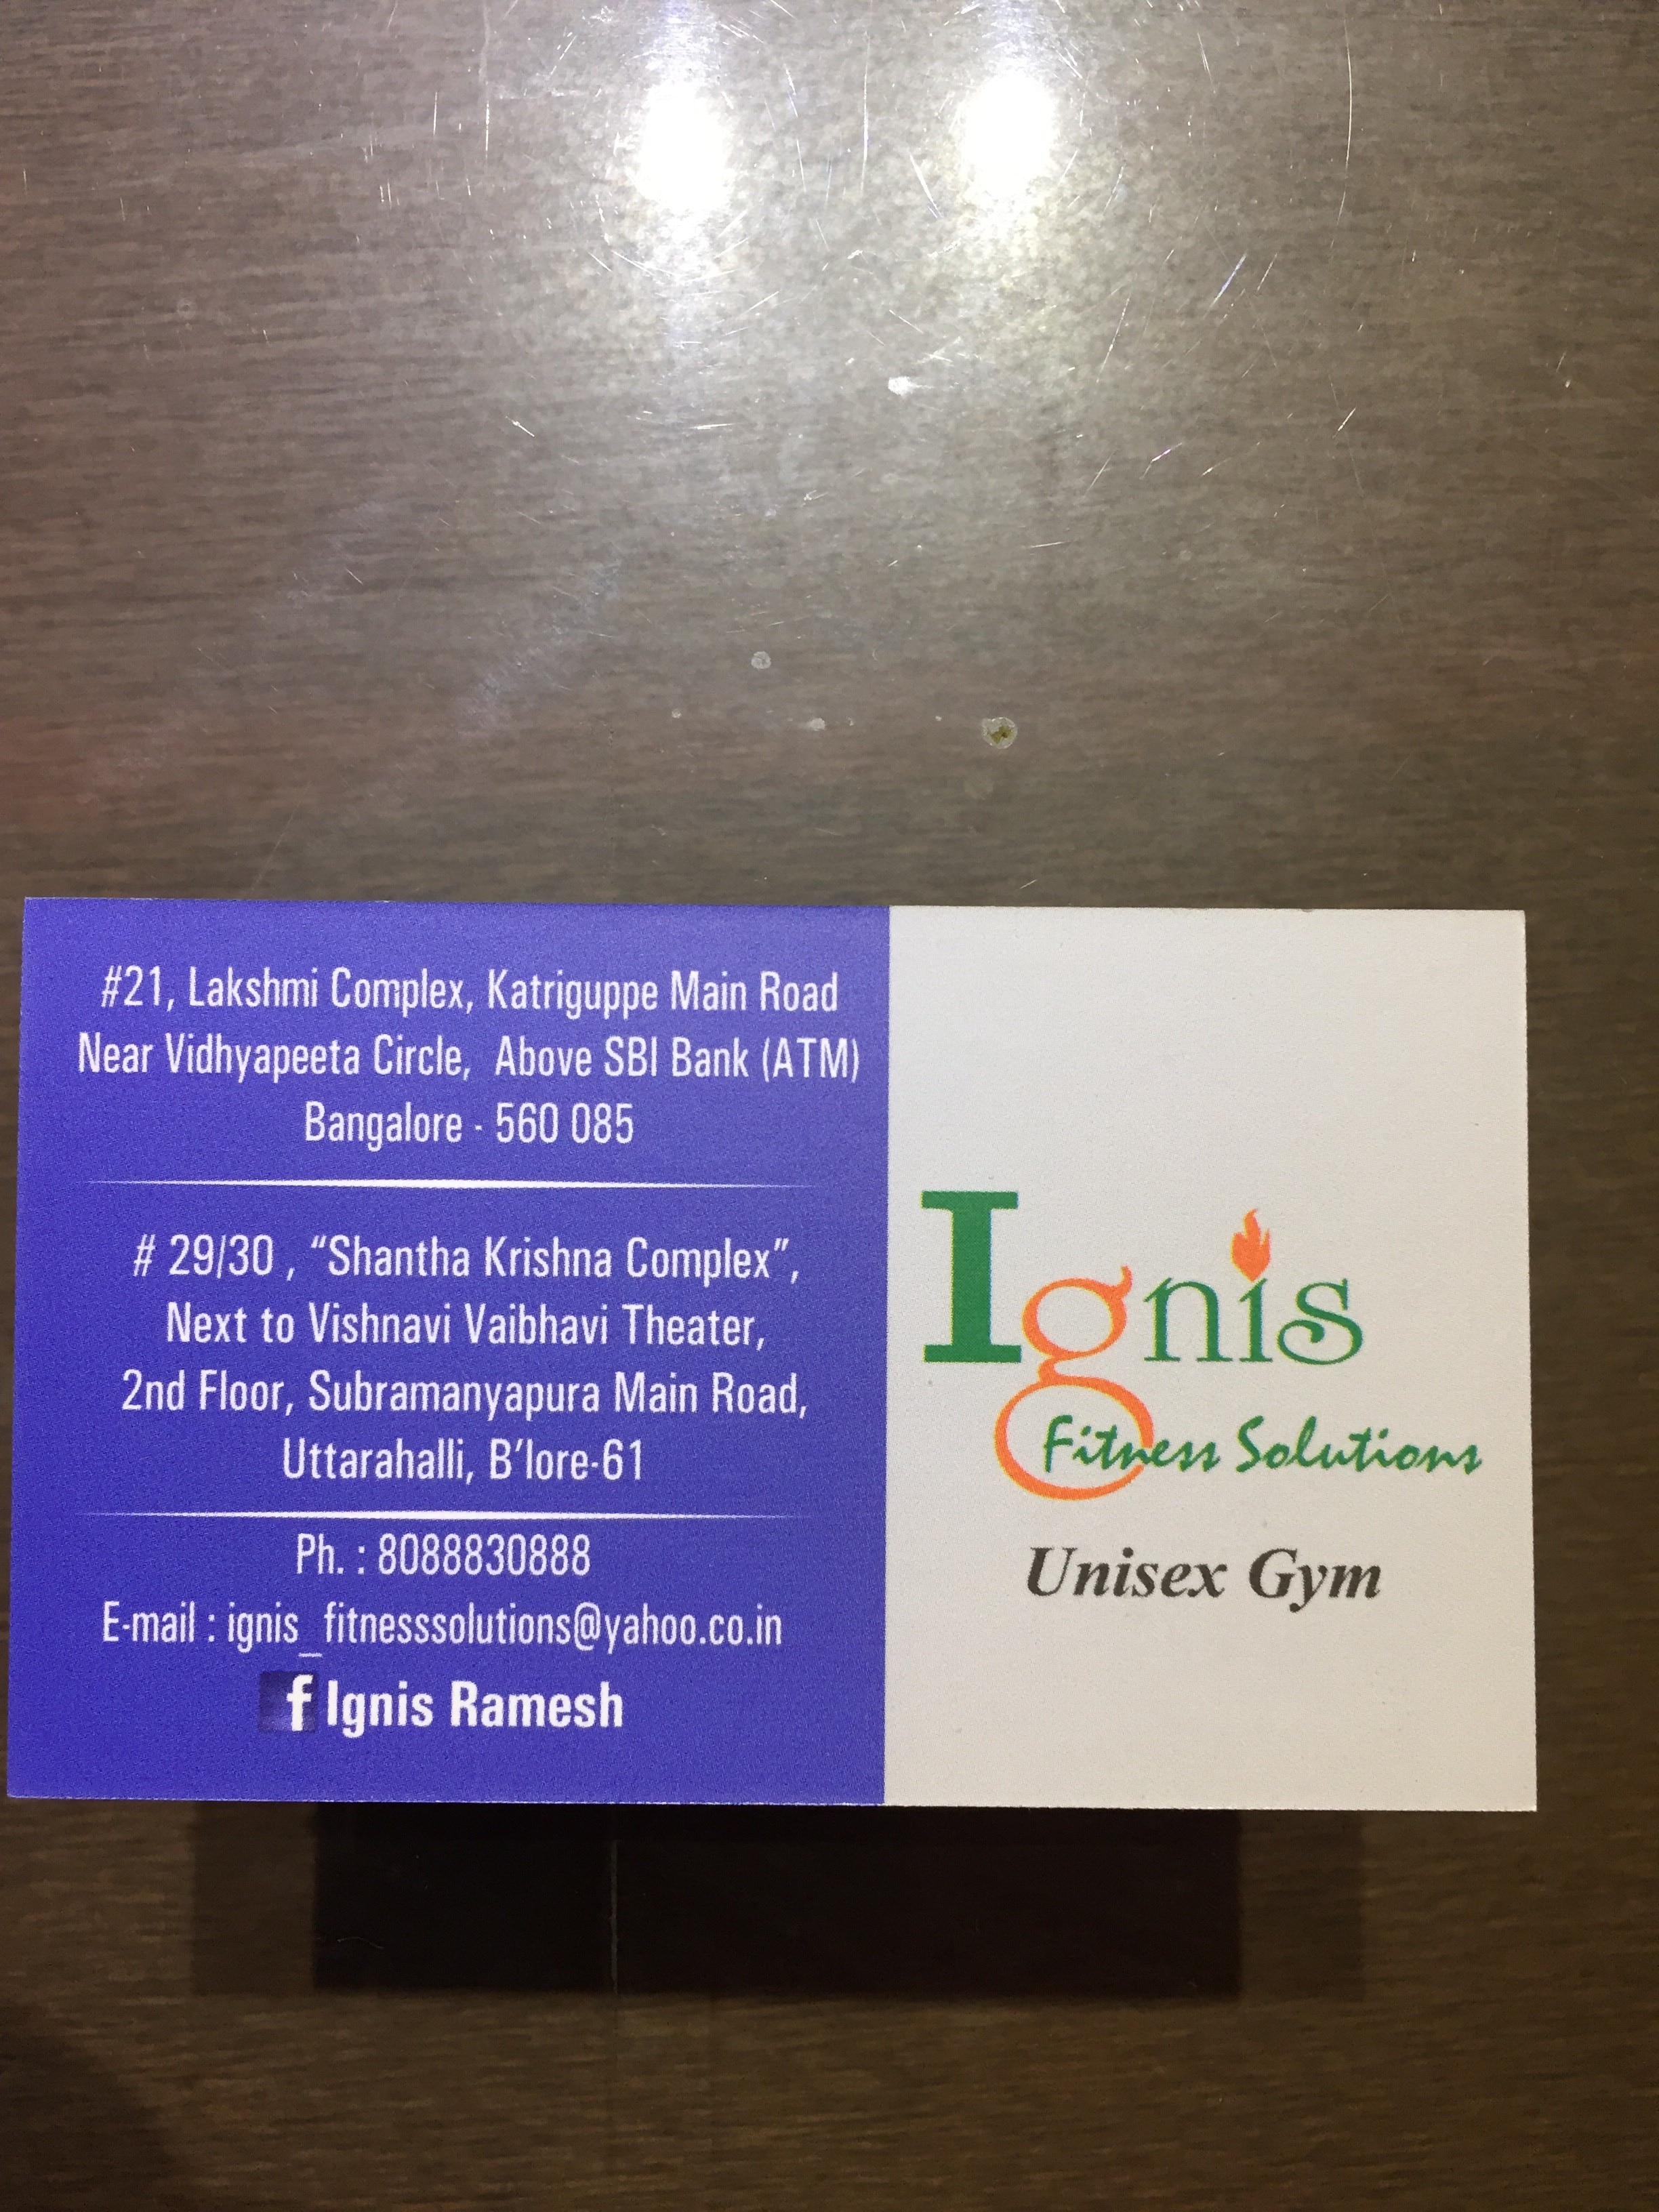 Ignis Fitness Solutions